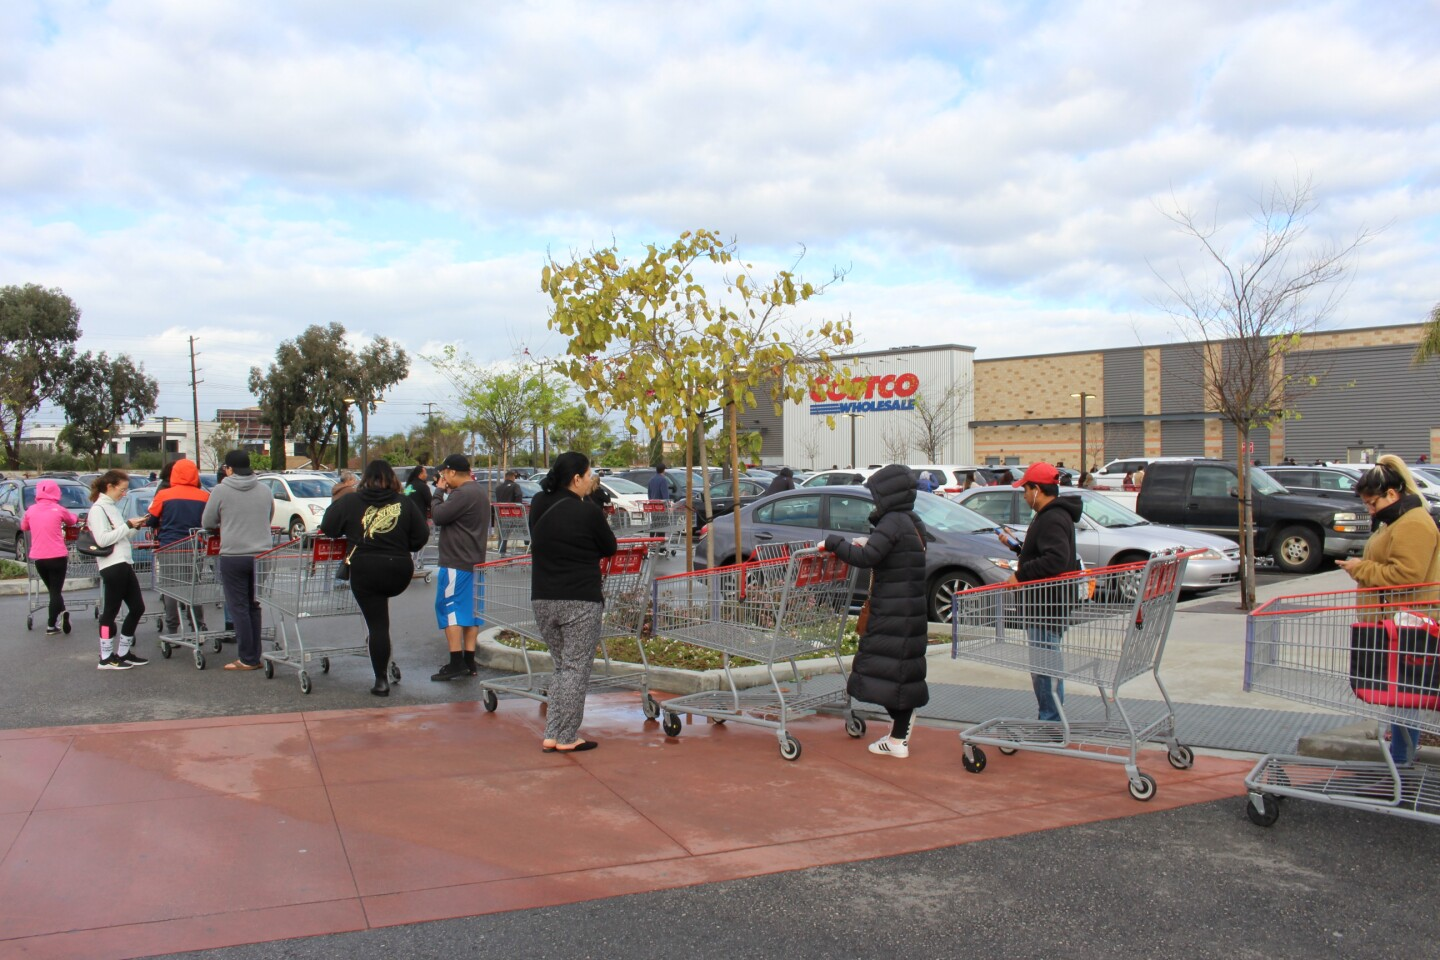 Line of shoppers in parking lot outside of Costco in Marina Del Ray on March 15th, 2020